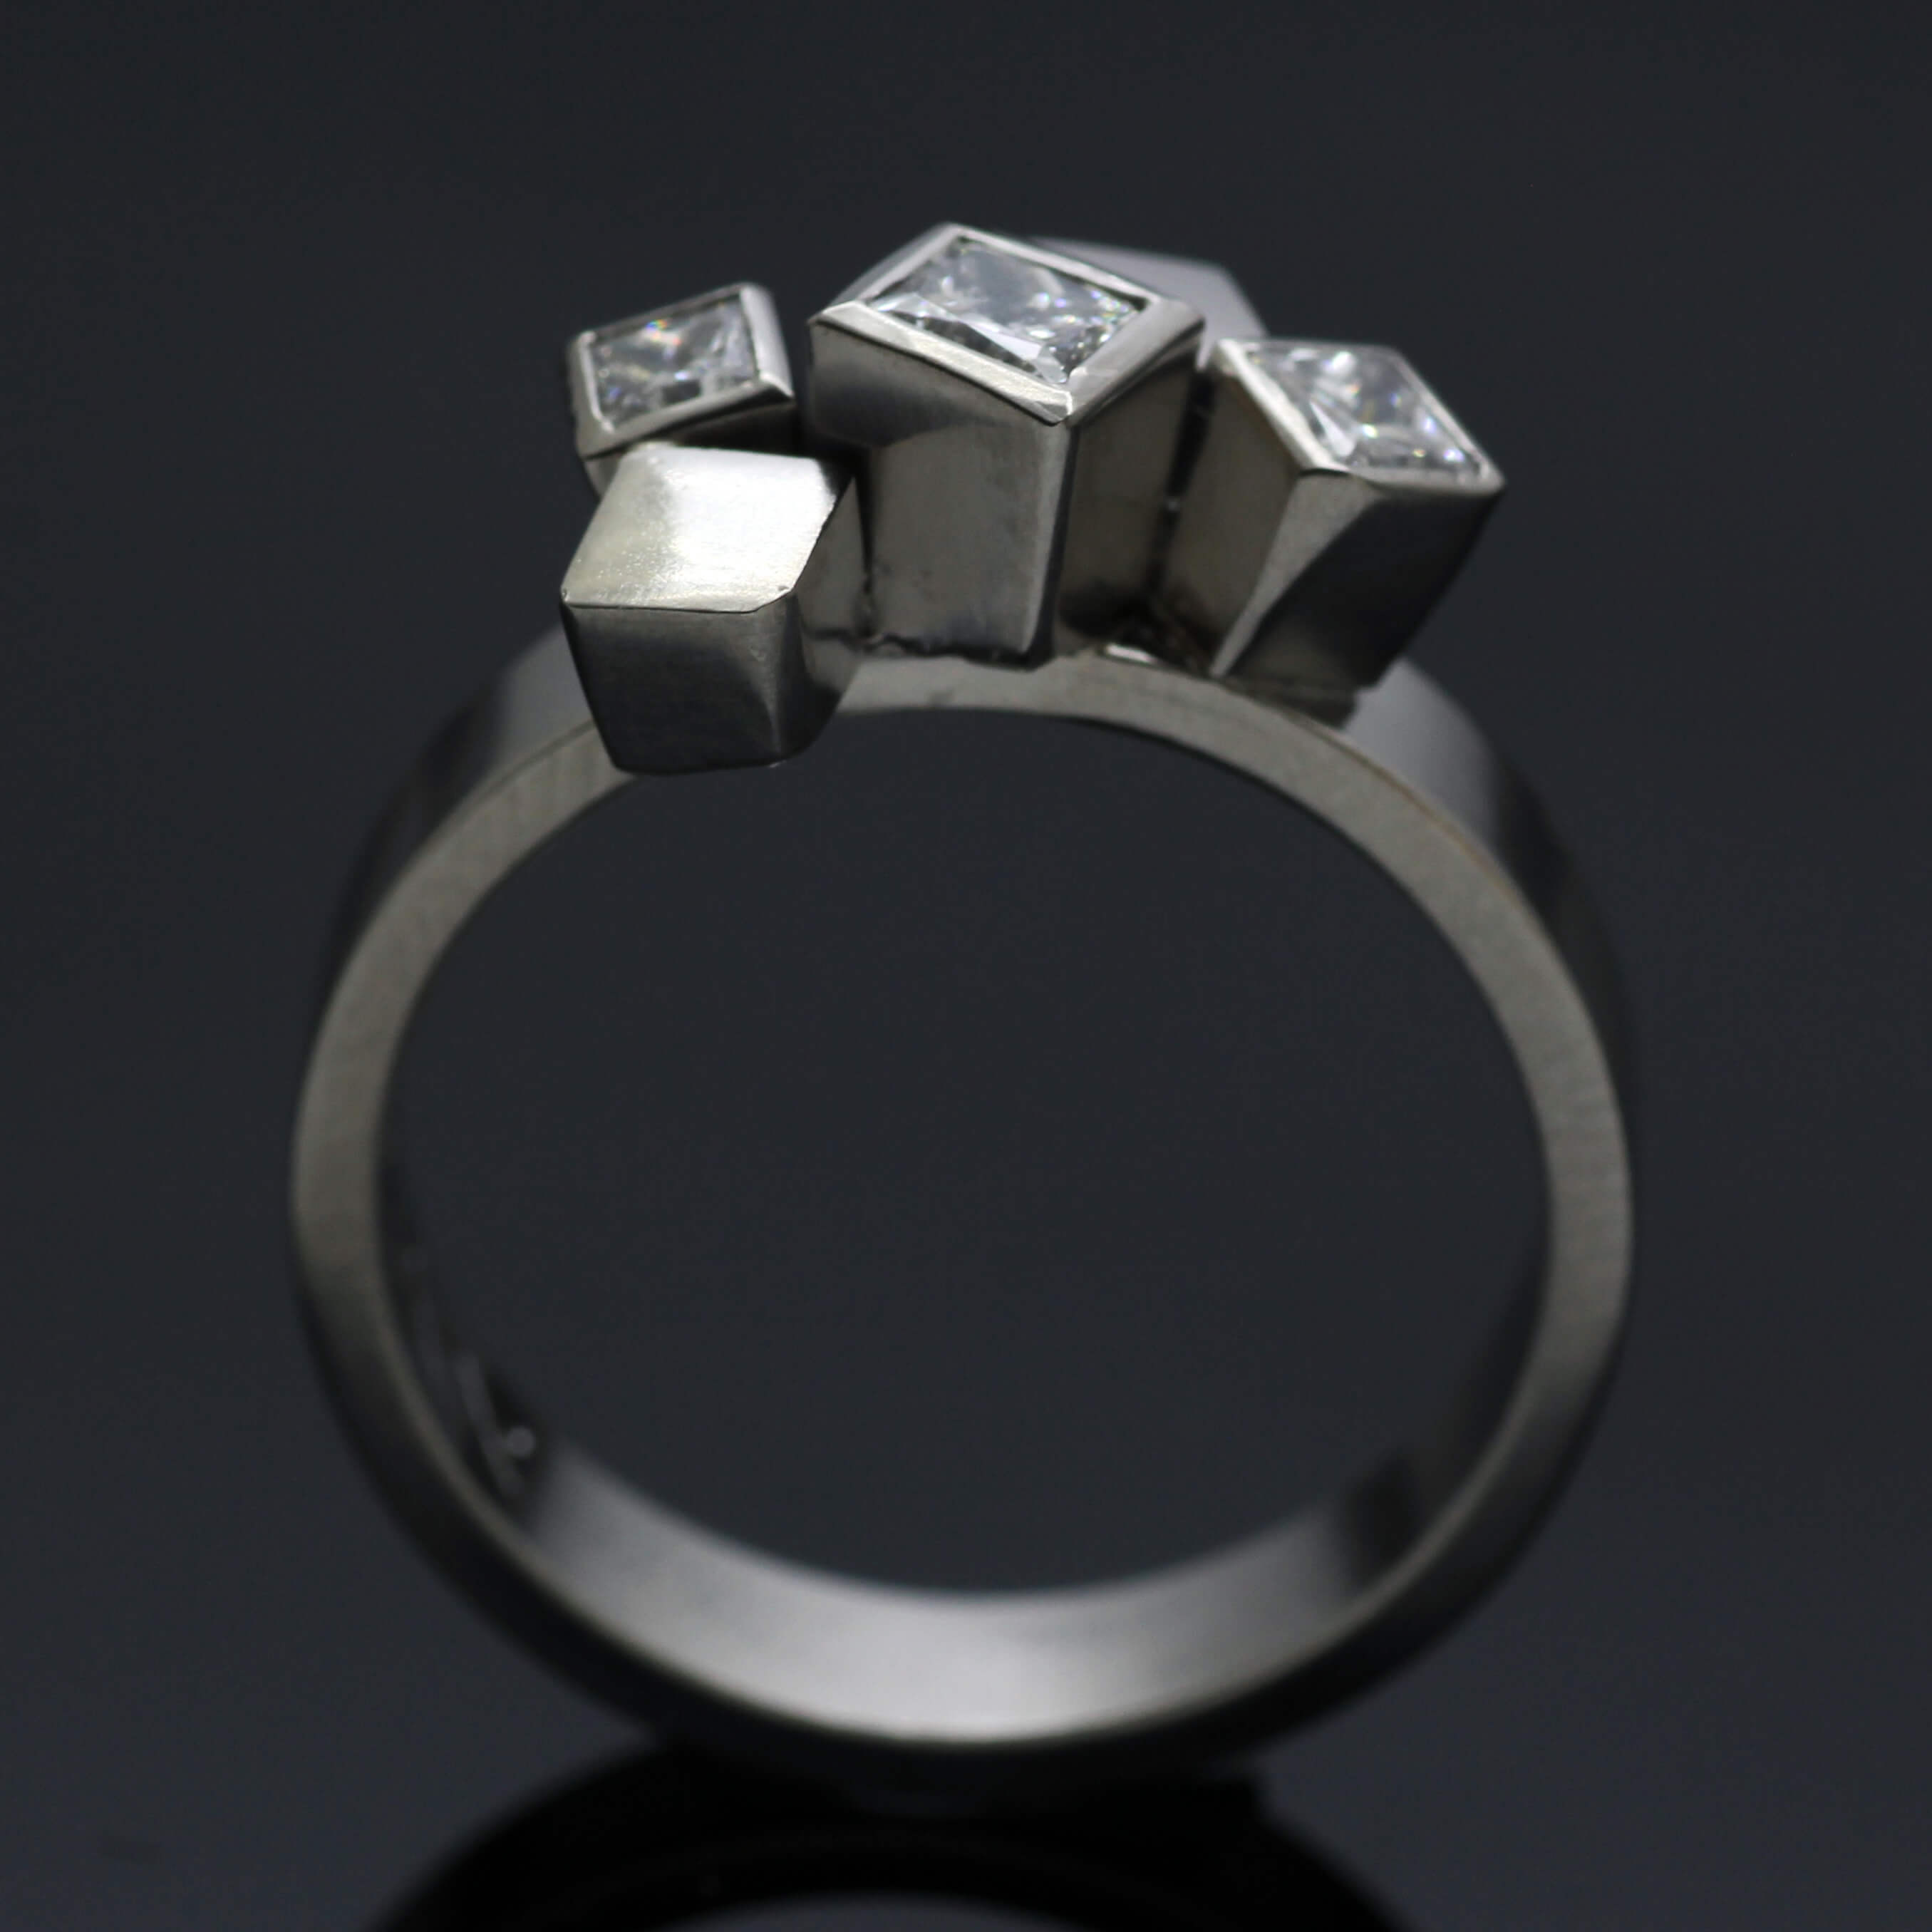 Bespoke handcrafted Palladium and Princess cut Diamonds engagement ring